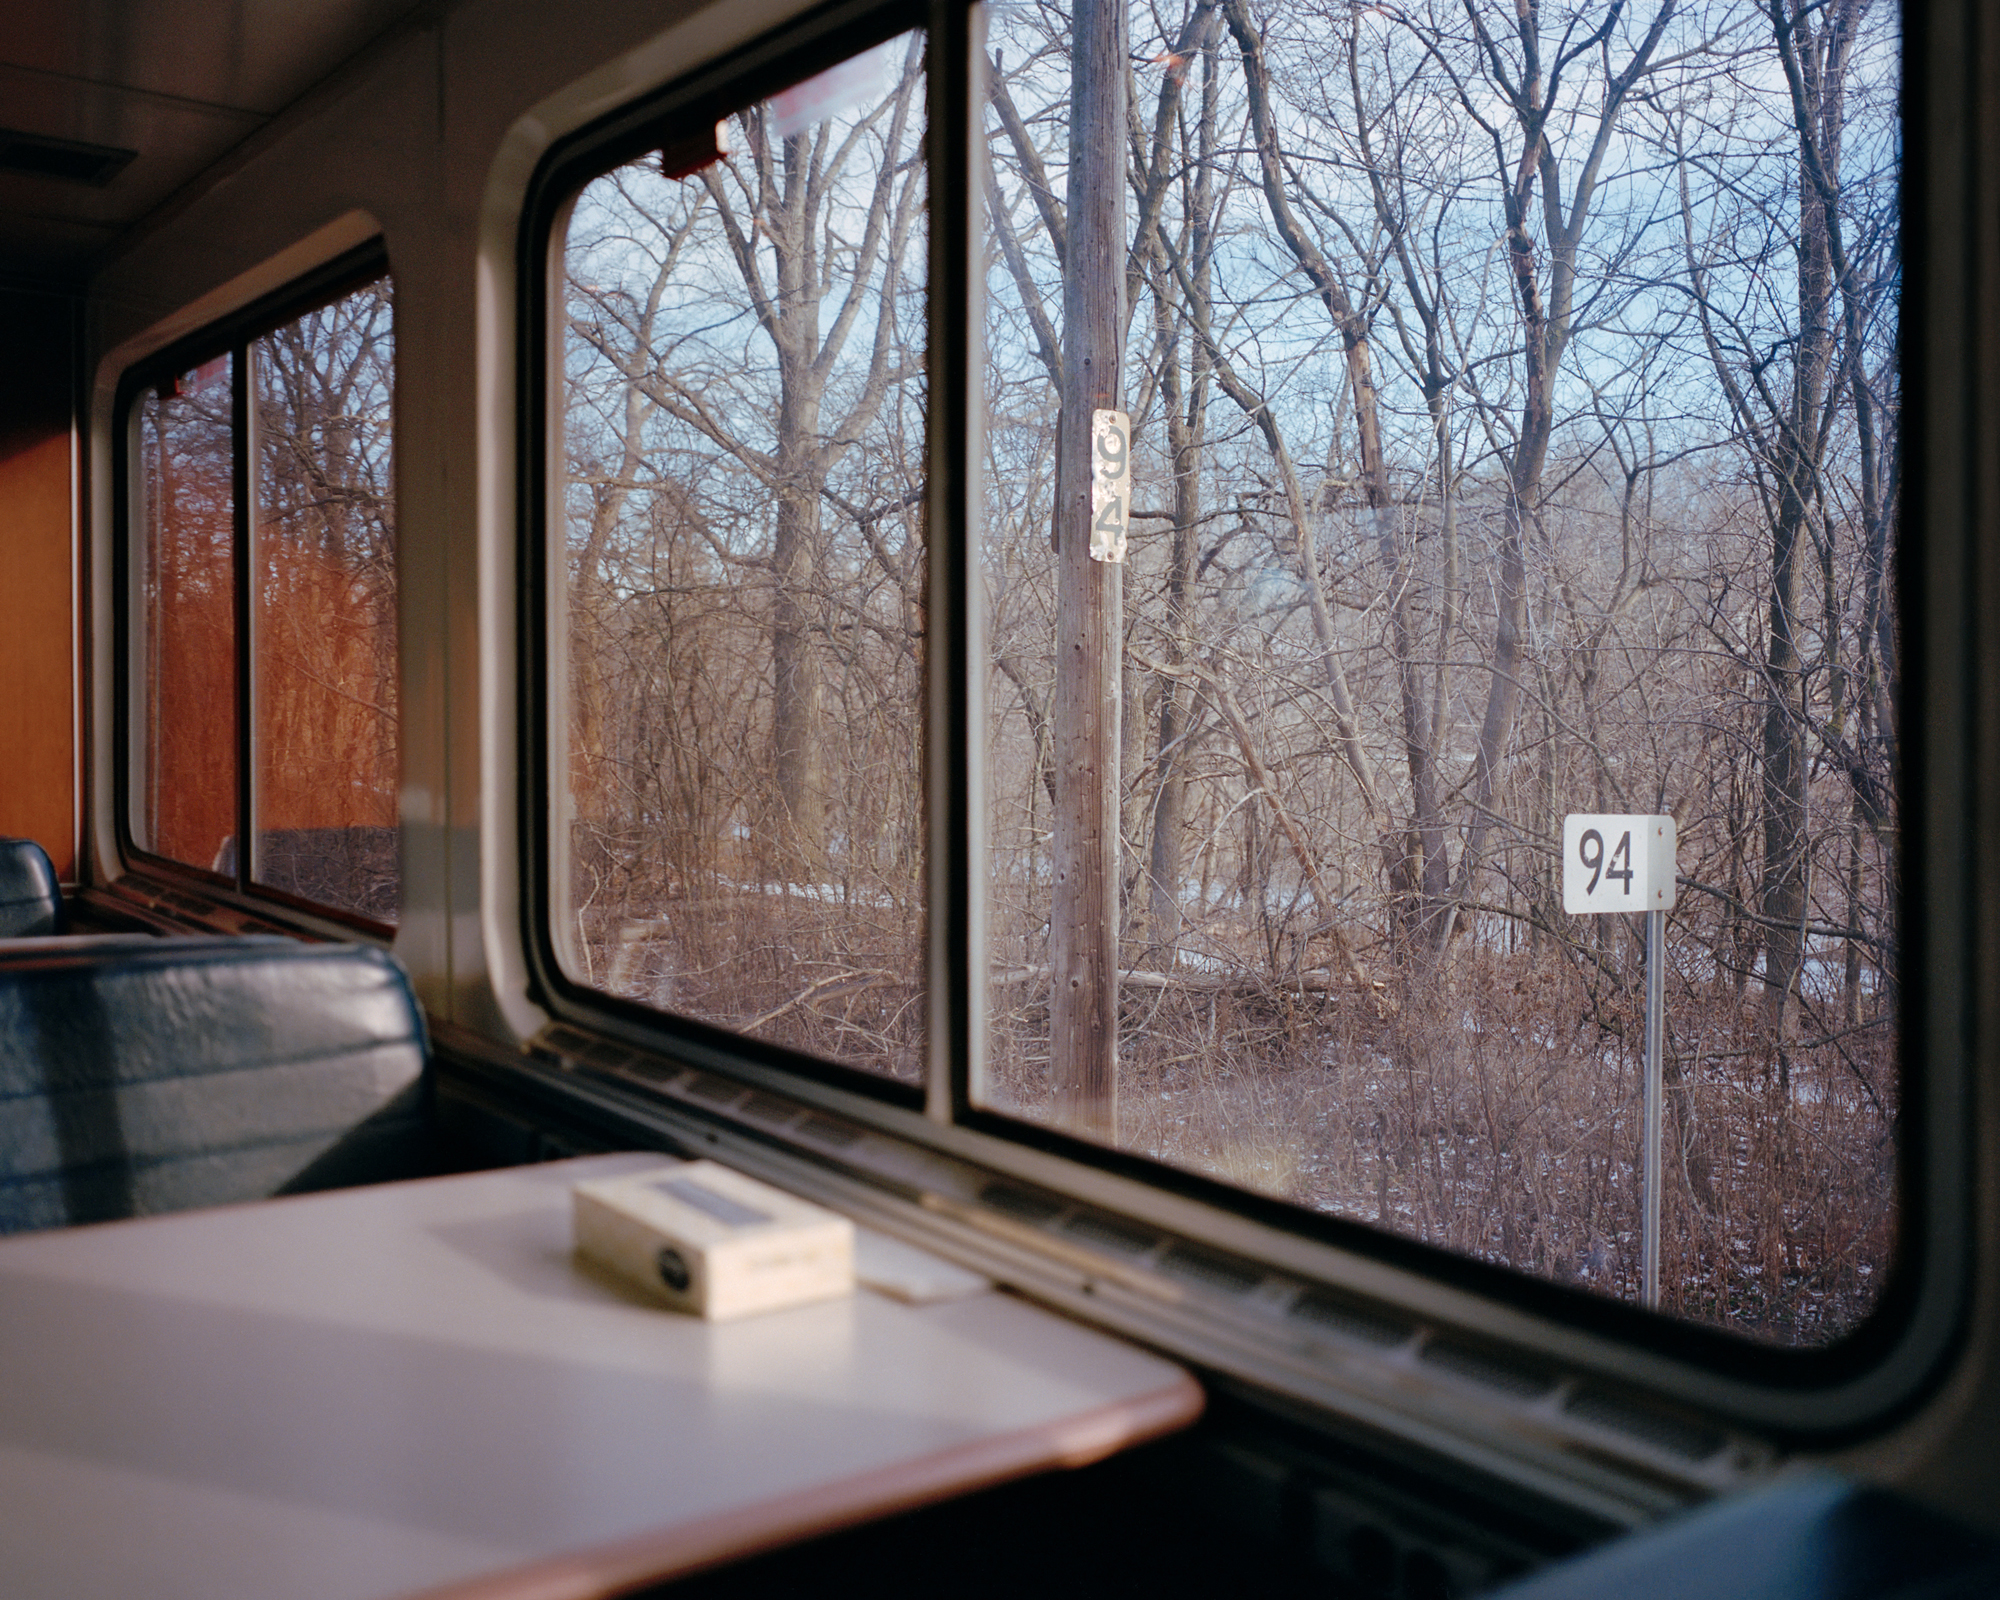 McNAIR EVANS  Empire Builder 46005,  2013 Archival Pigment Print  Available sizes 40 x 50 in, edition of 3 + 1AP 32 x 40 in, edition of 5 + 1AP 20 x 25 in, edition of 5 + 1AP